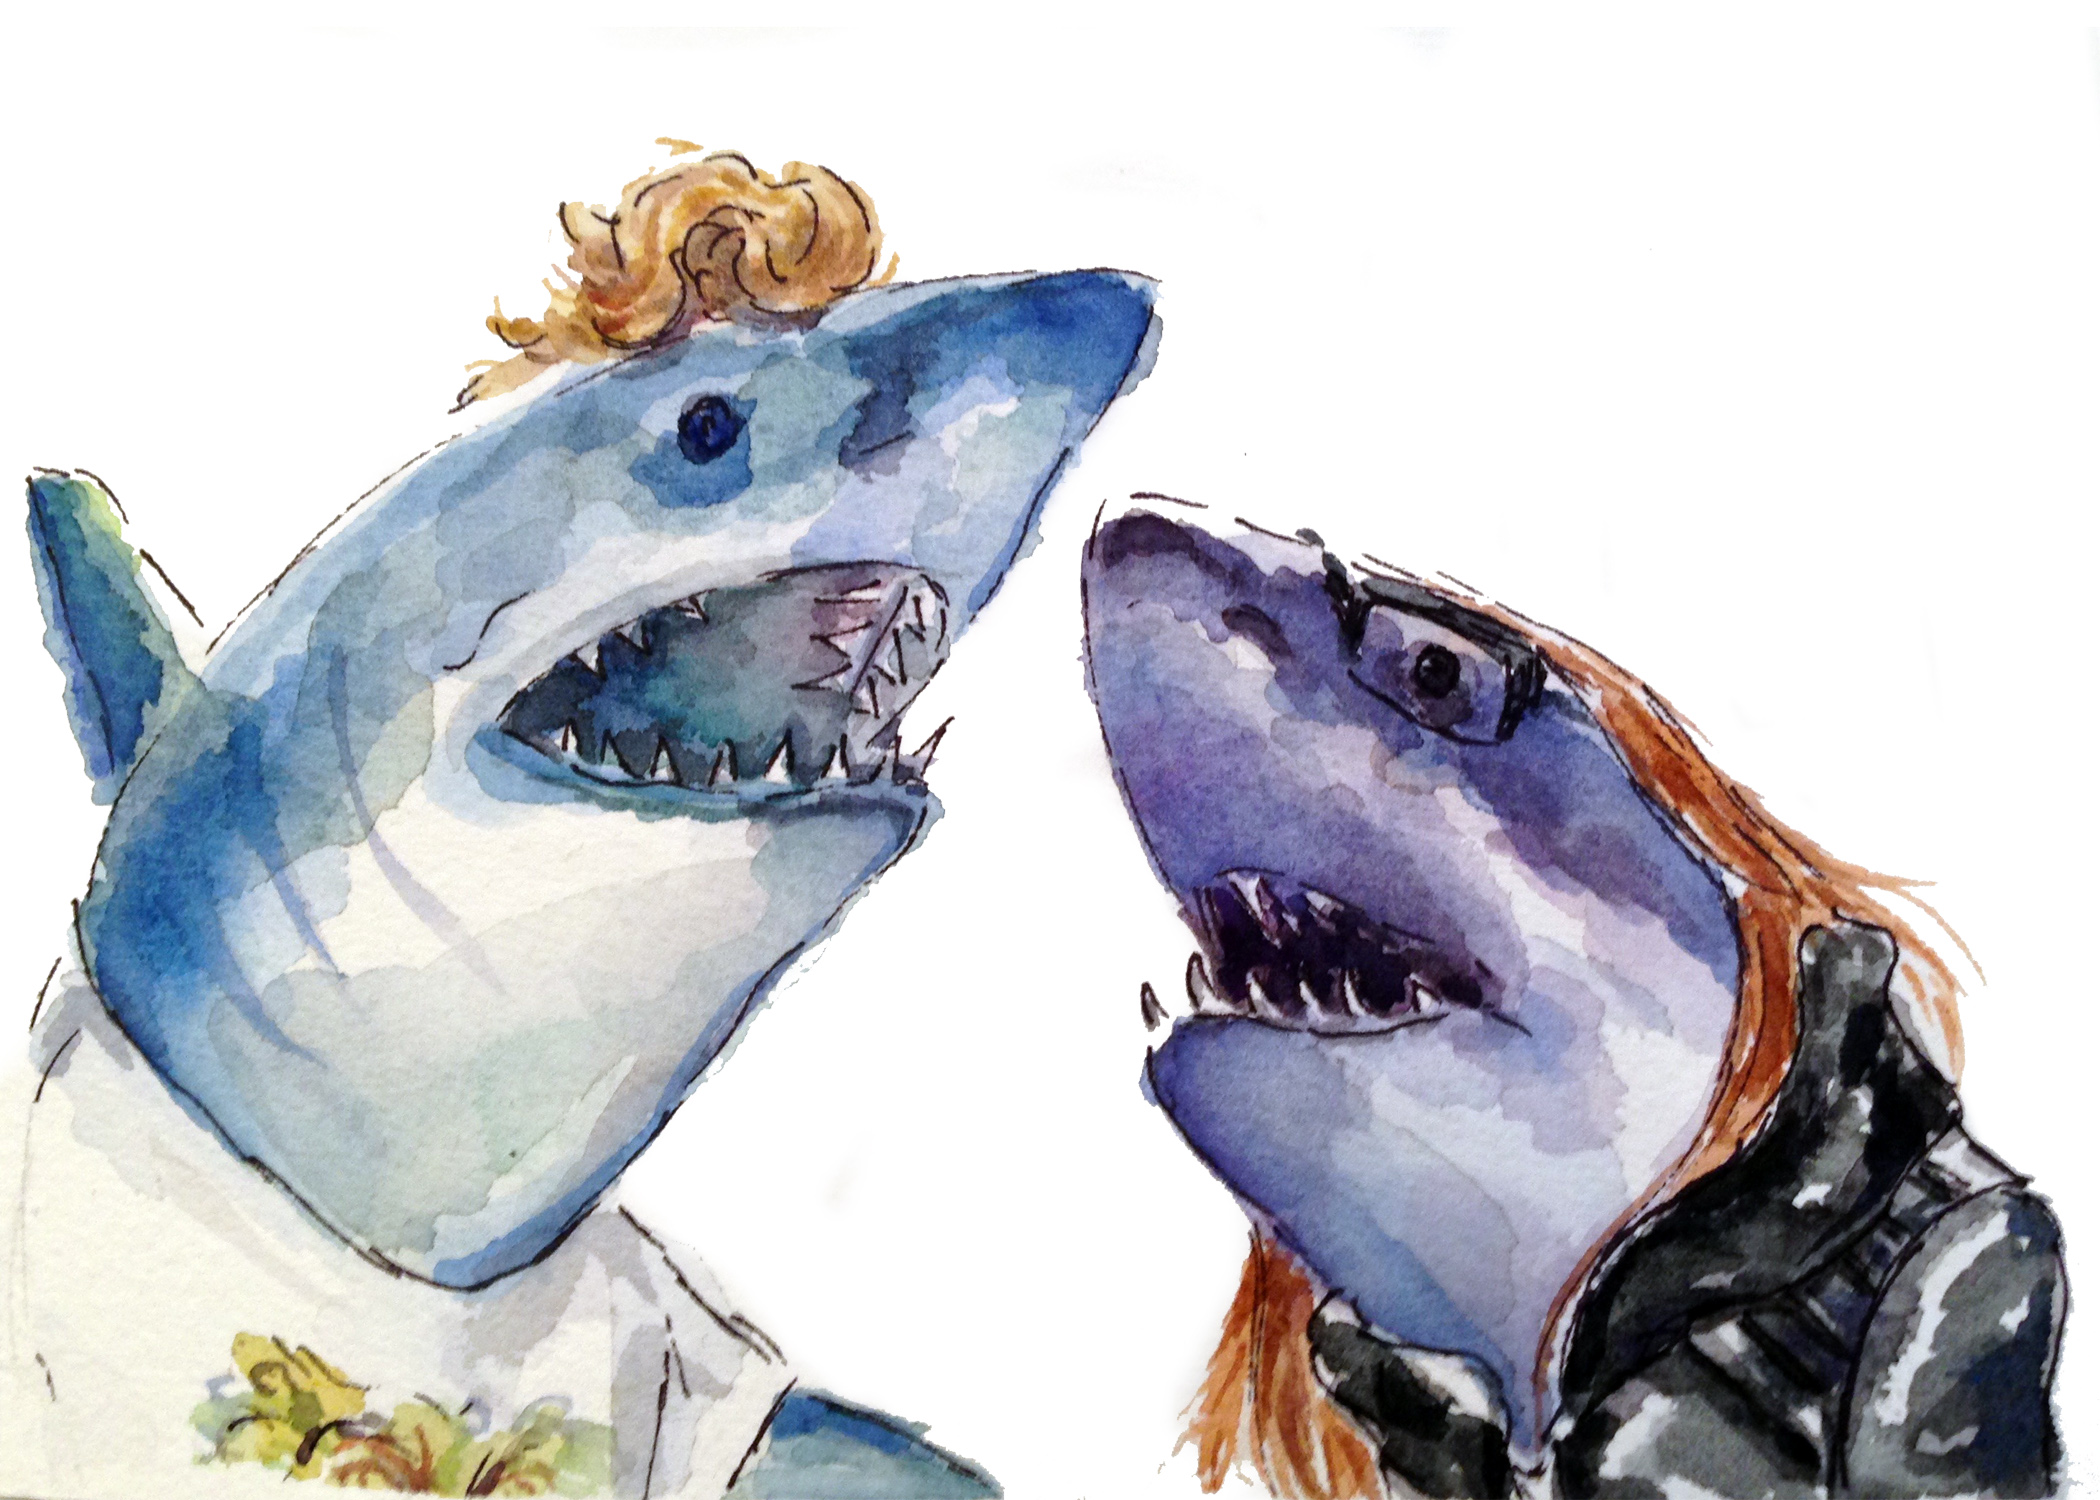 Dustin and Angela as sharks